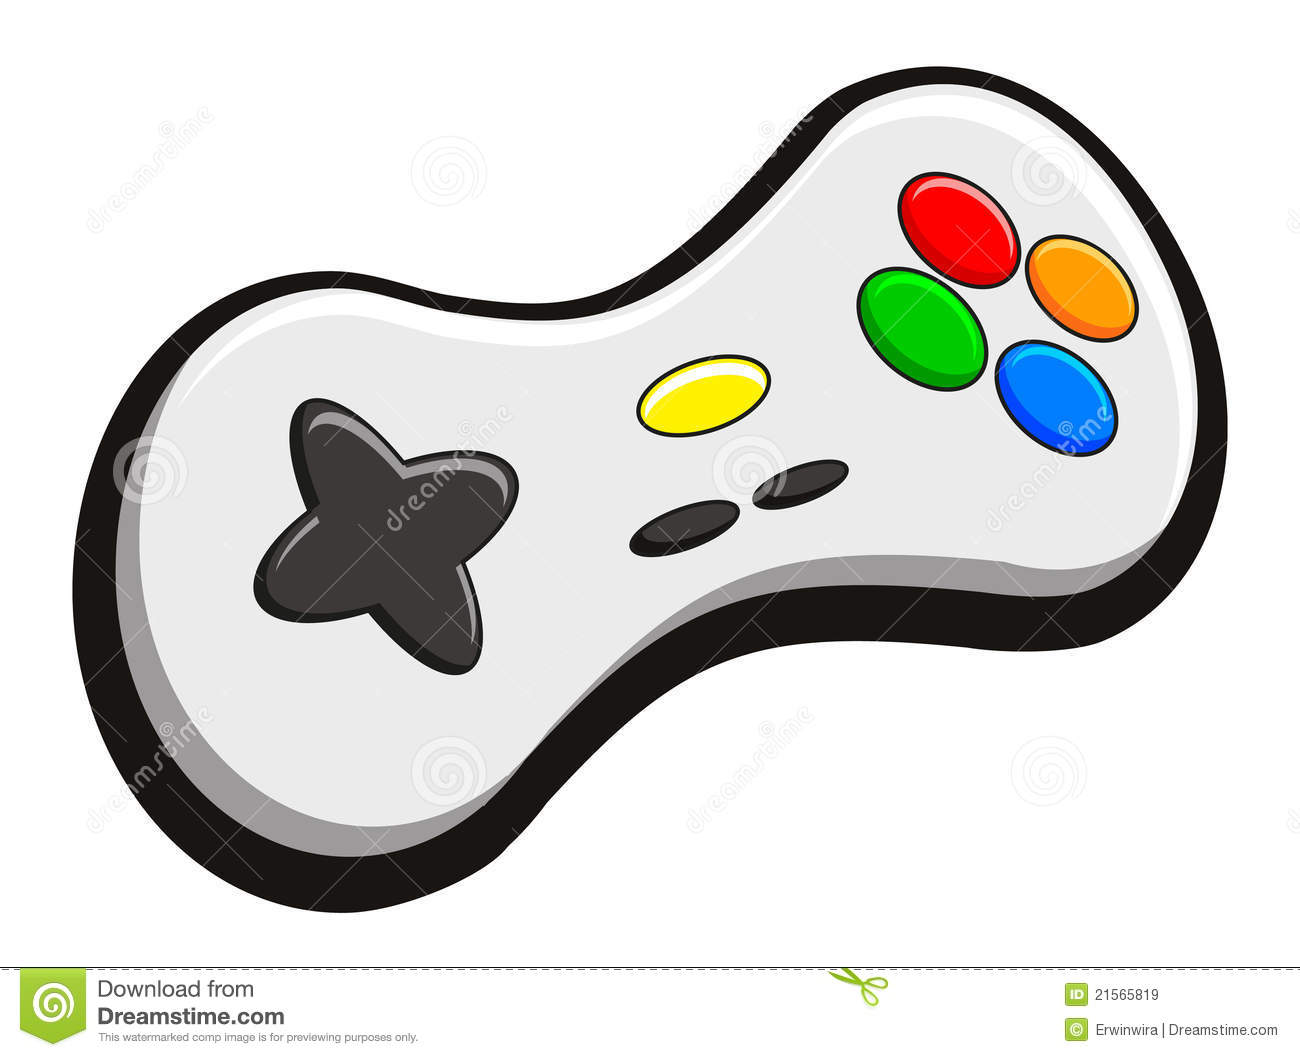 Video Game Controller Icon Illustration of video game